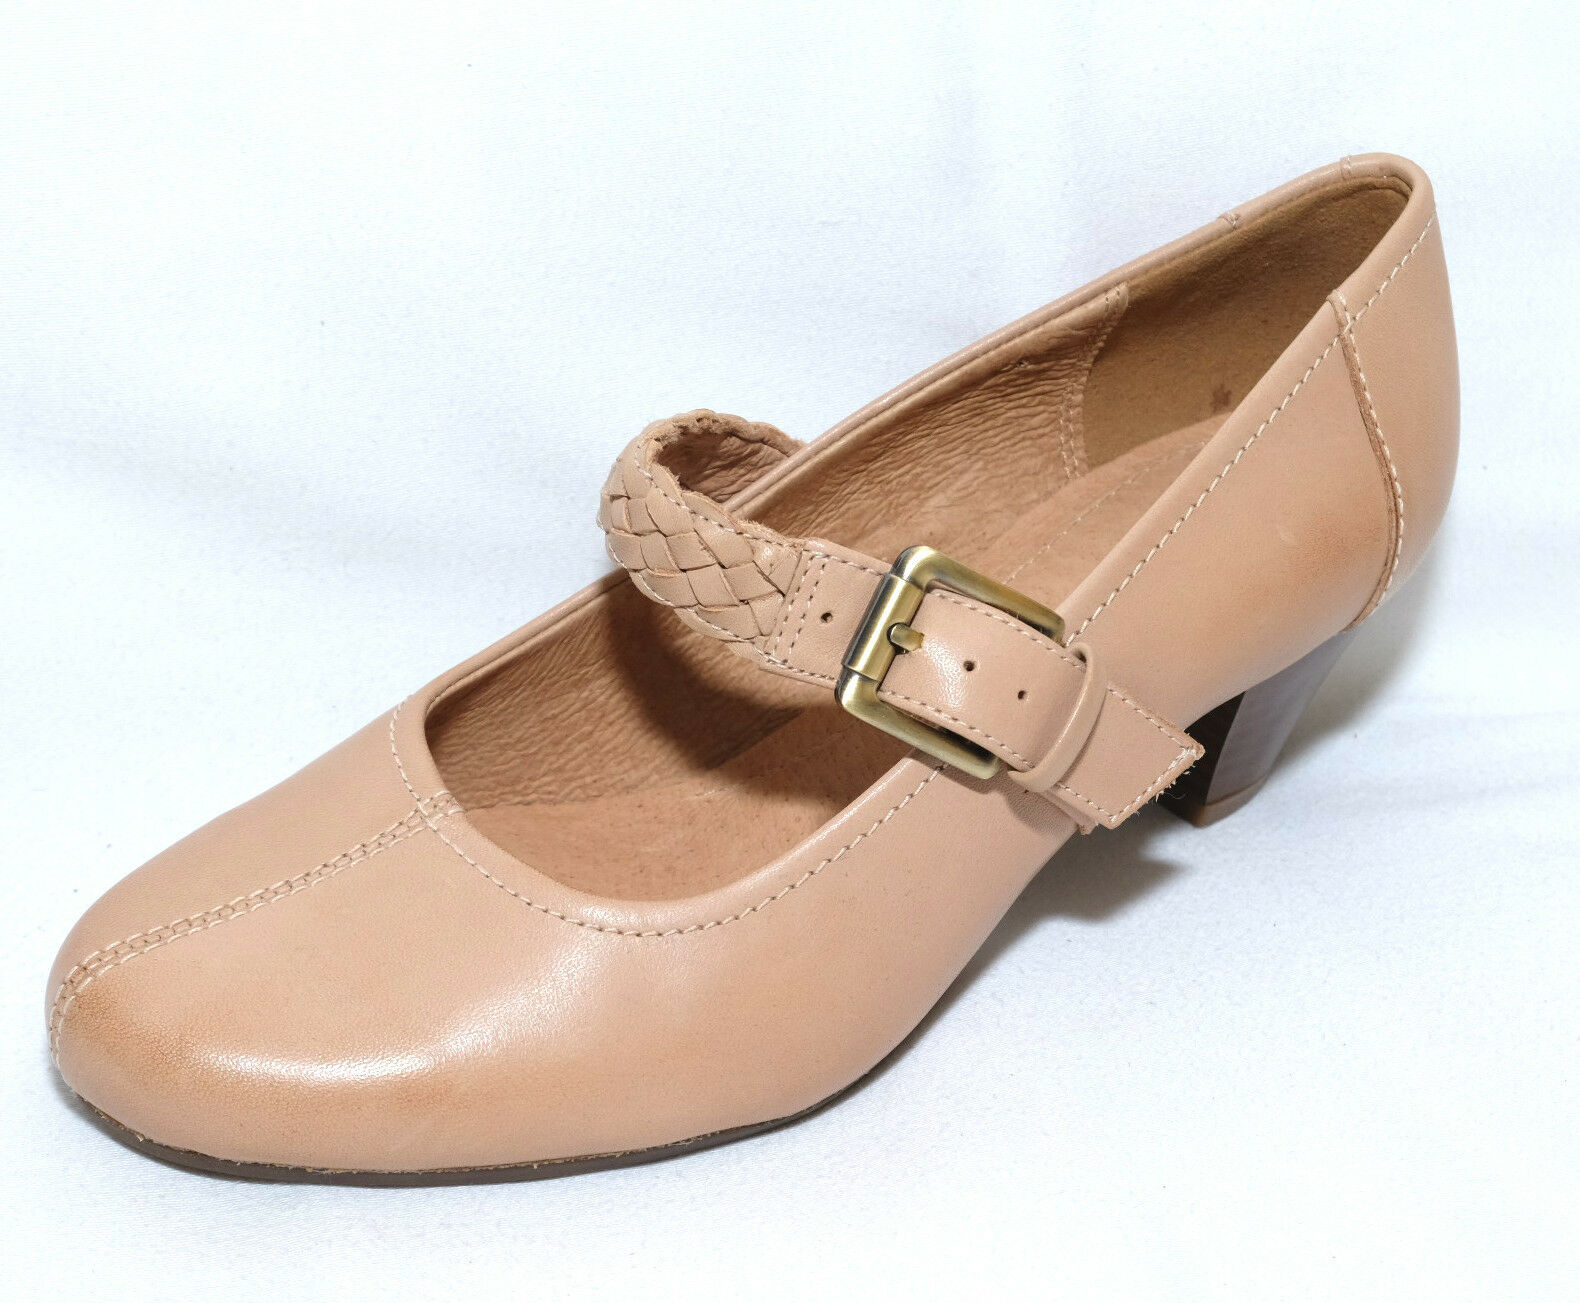 K by Clarks FEARNE DEW nude heel leather shoes size 3E.New